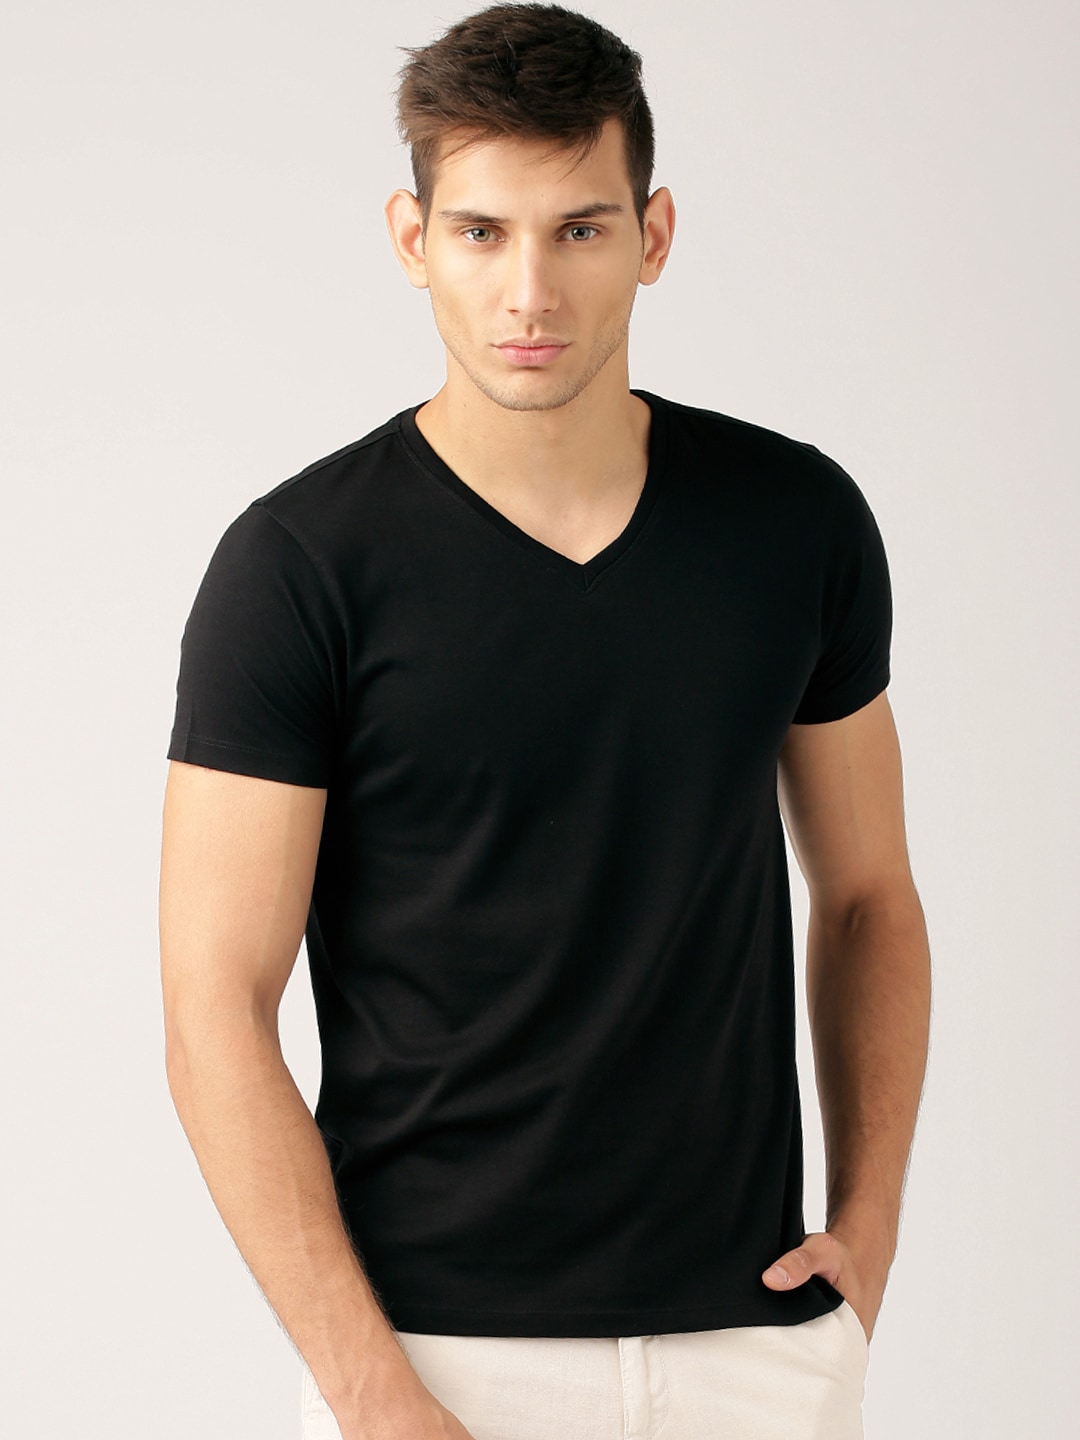 Black t shirt man - Black T Shirt Man 59